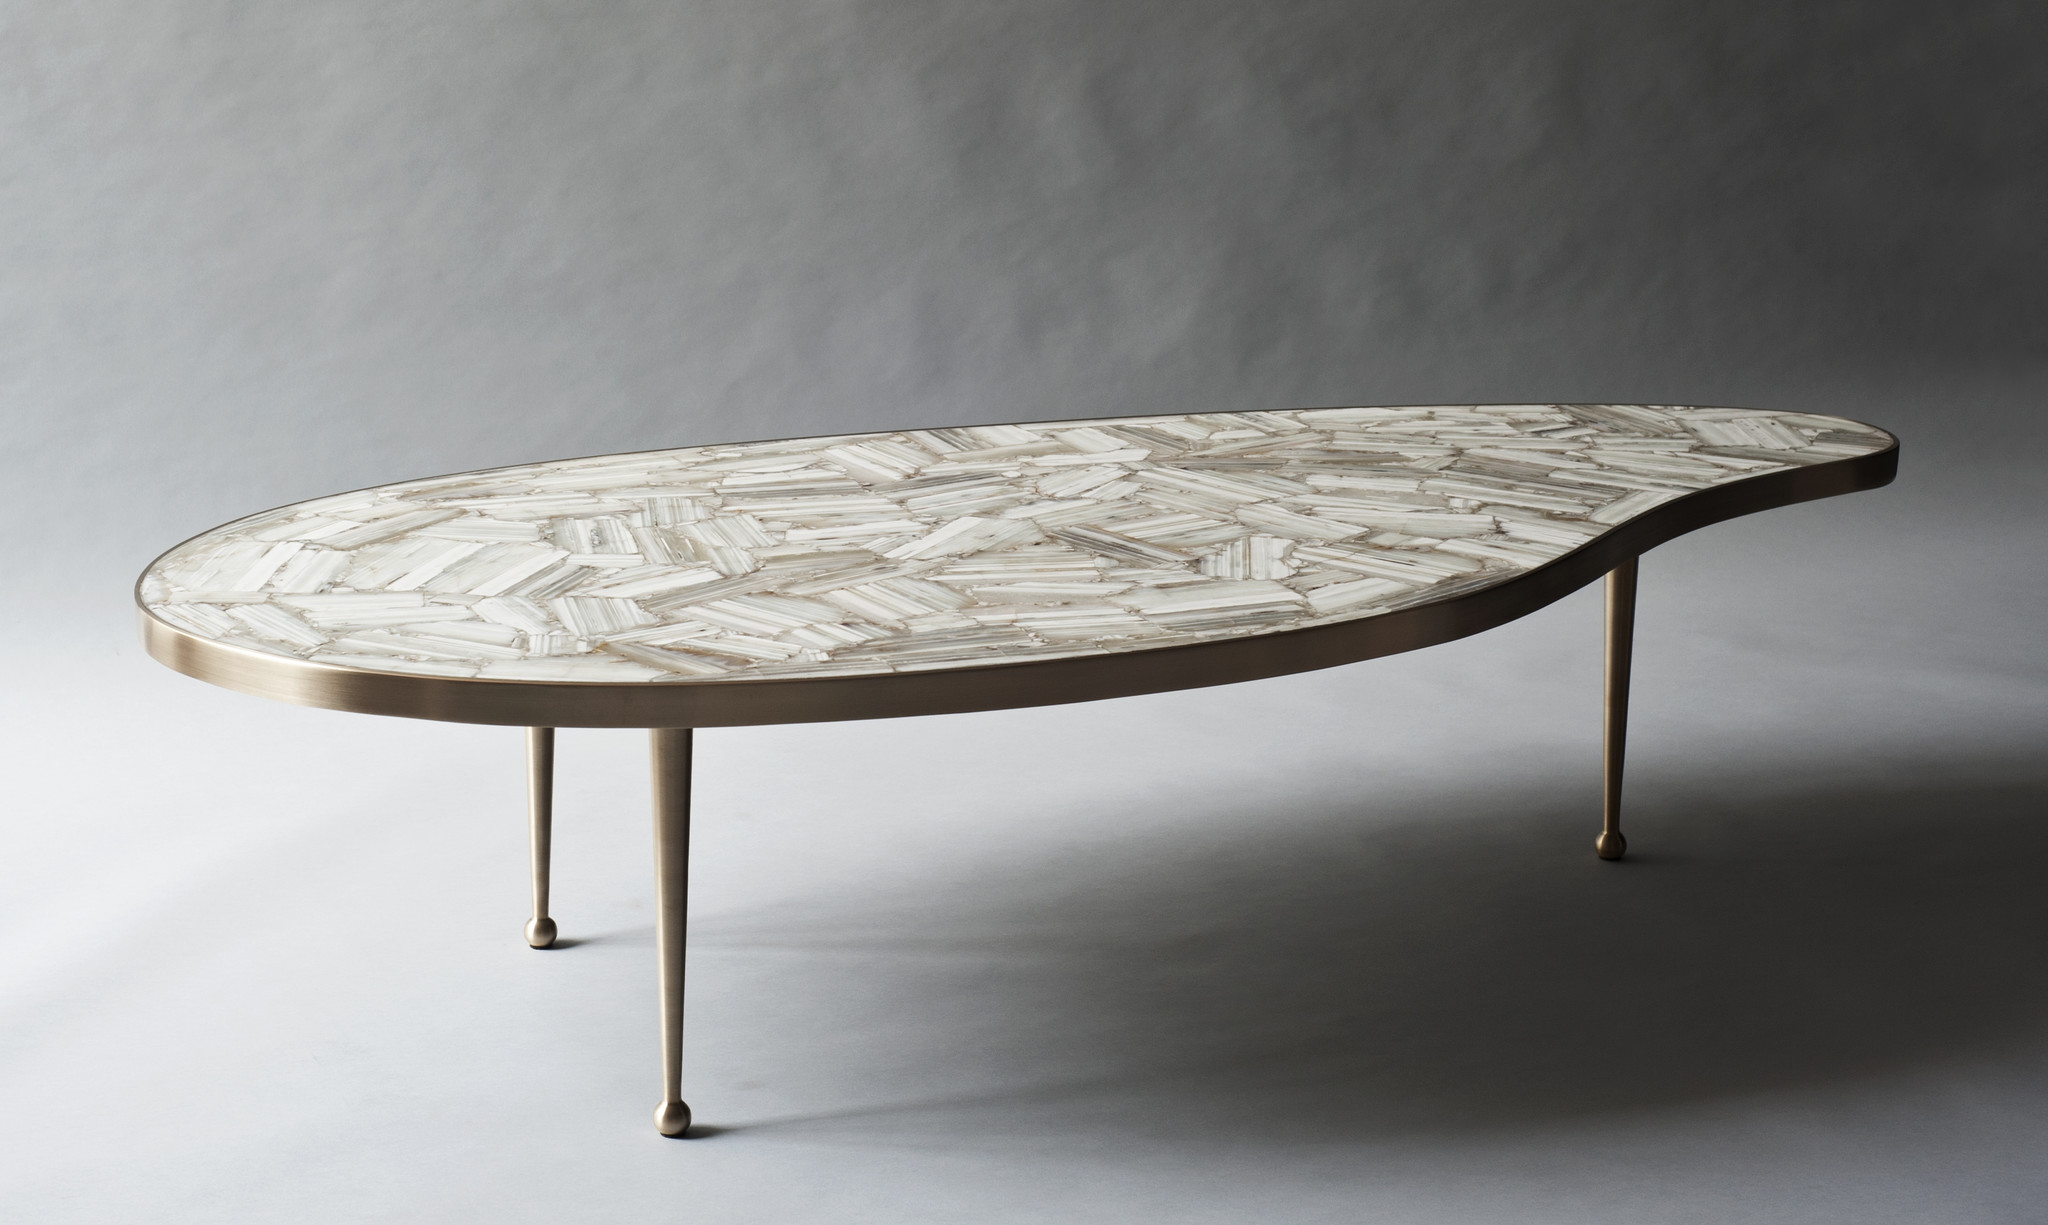 Demuro Das Studio Lola Center Table